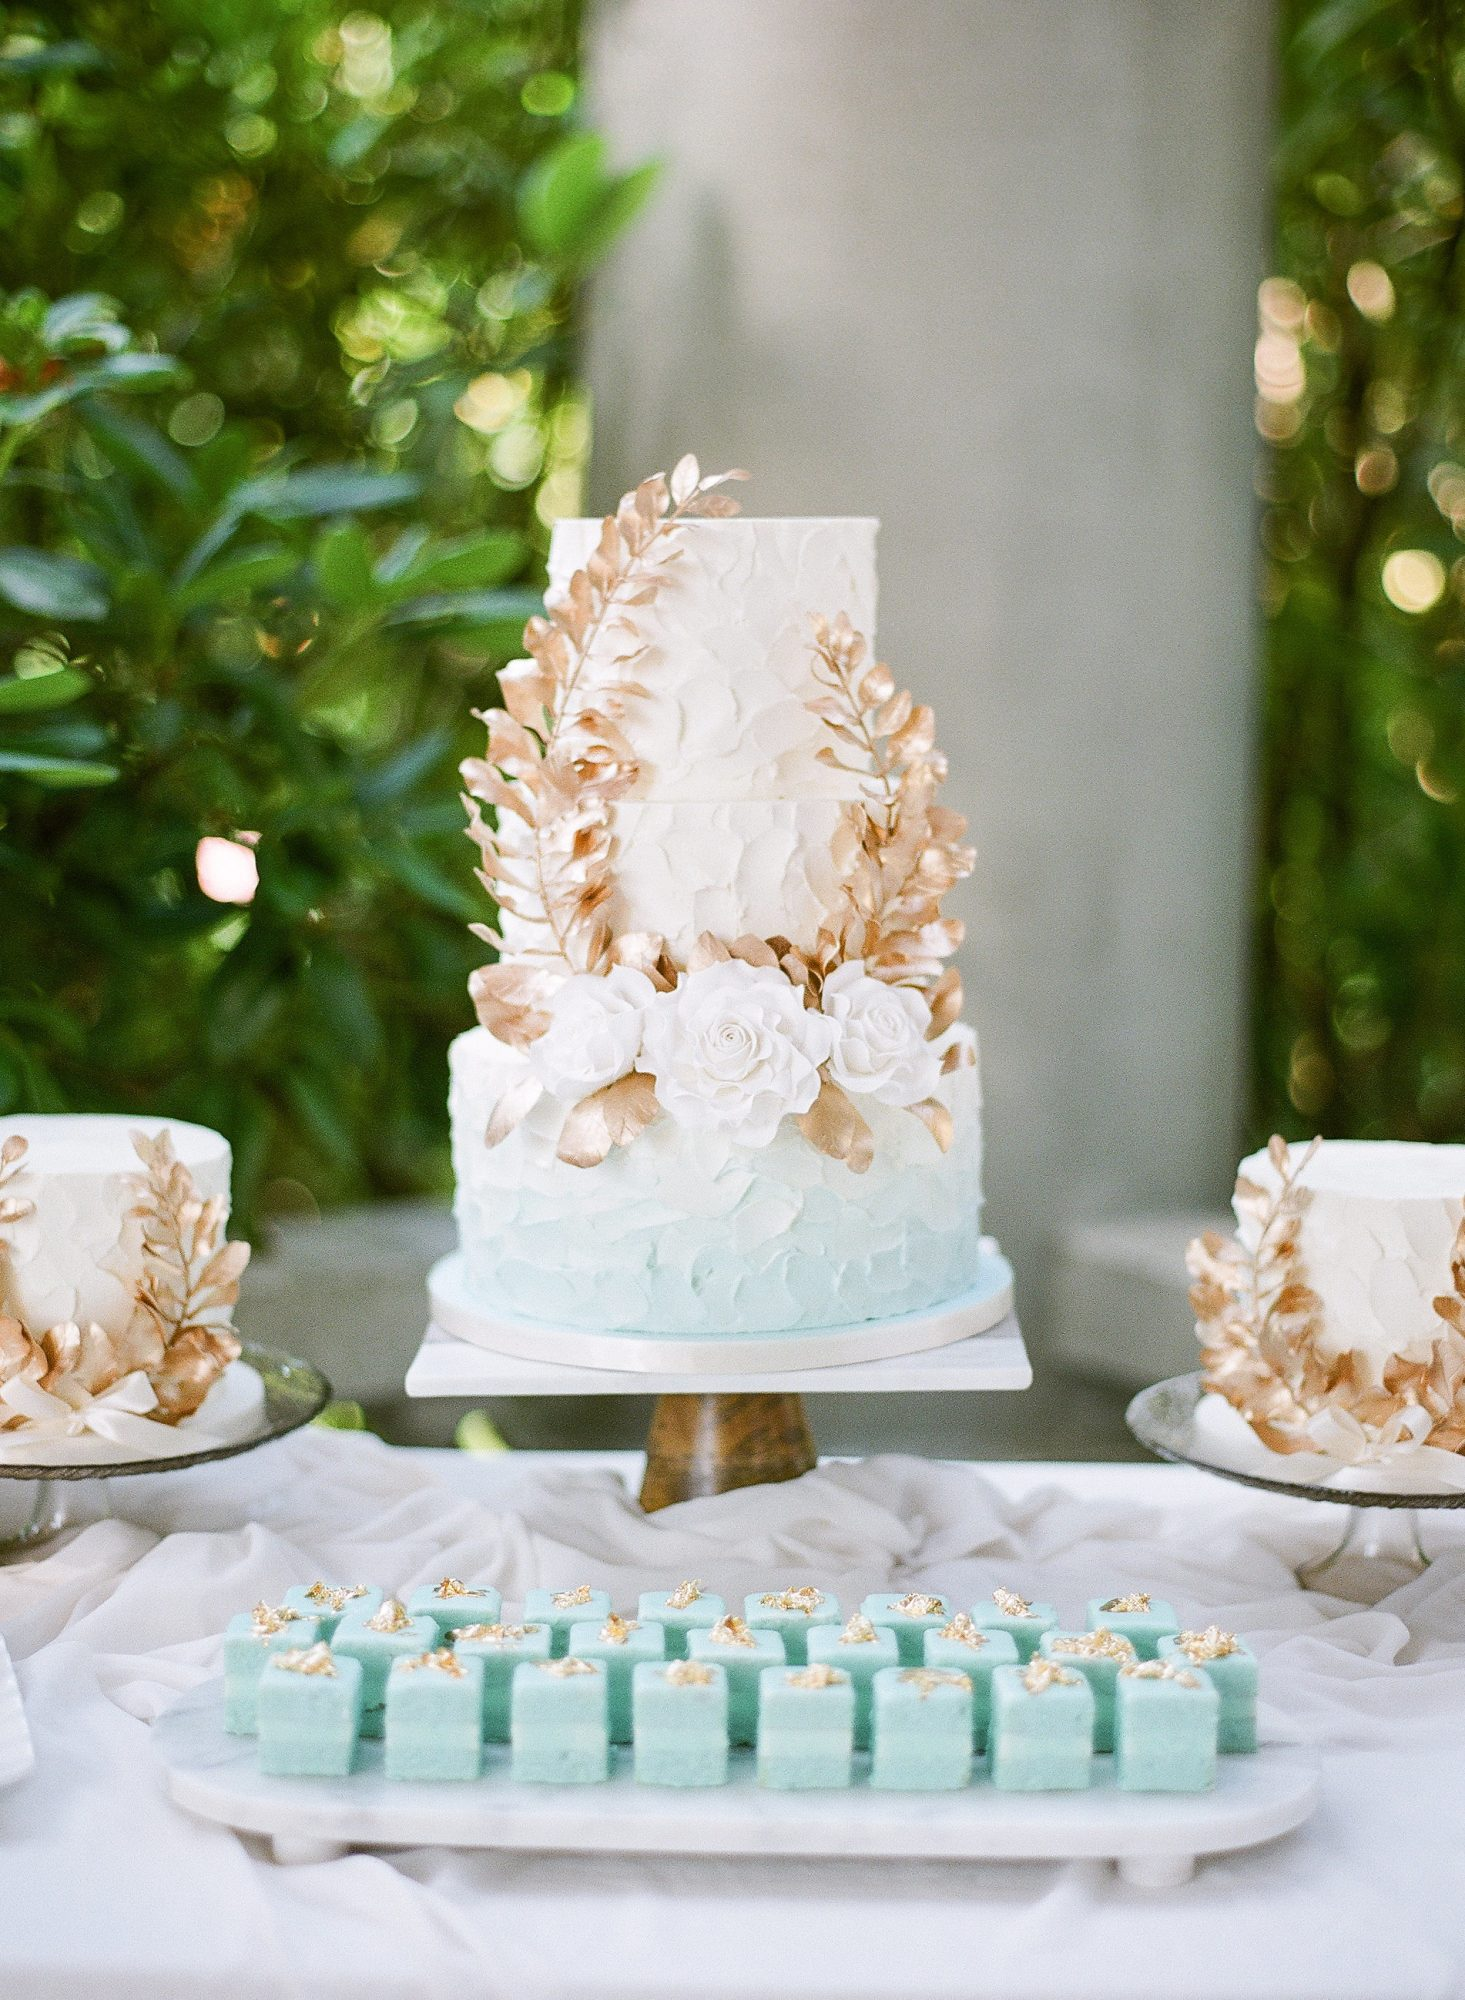 The centerpiece on this couple's dessert table was an aqua-tinged ombré buttercream cake by The Cake & The Giraffe.